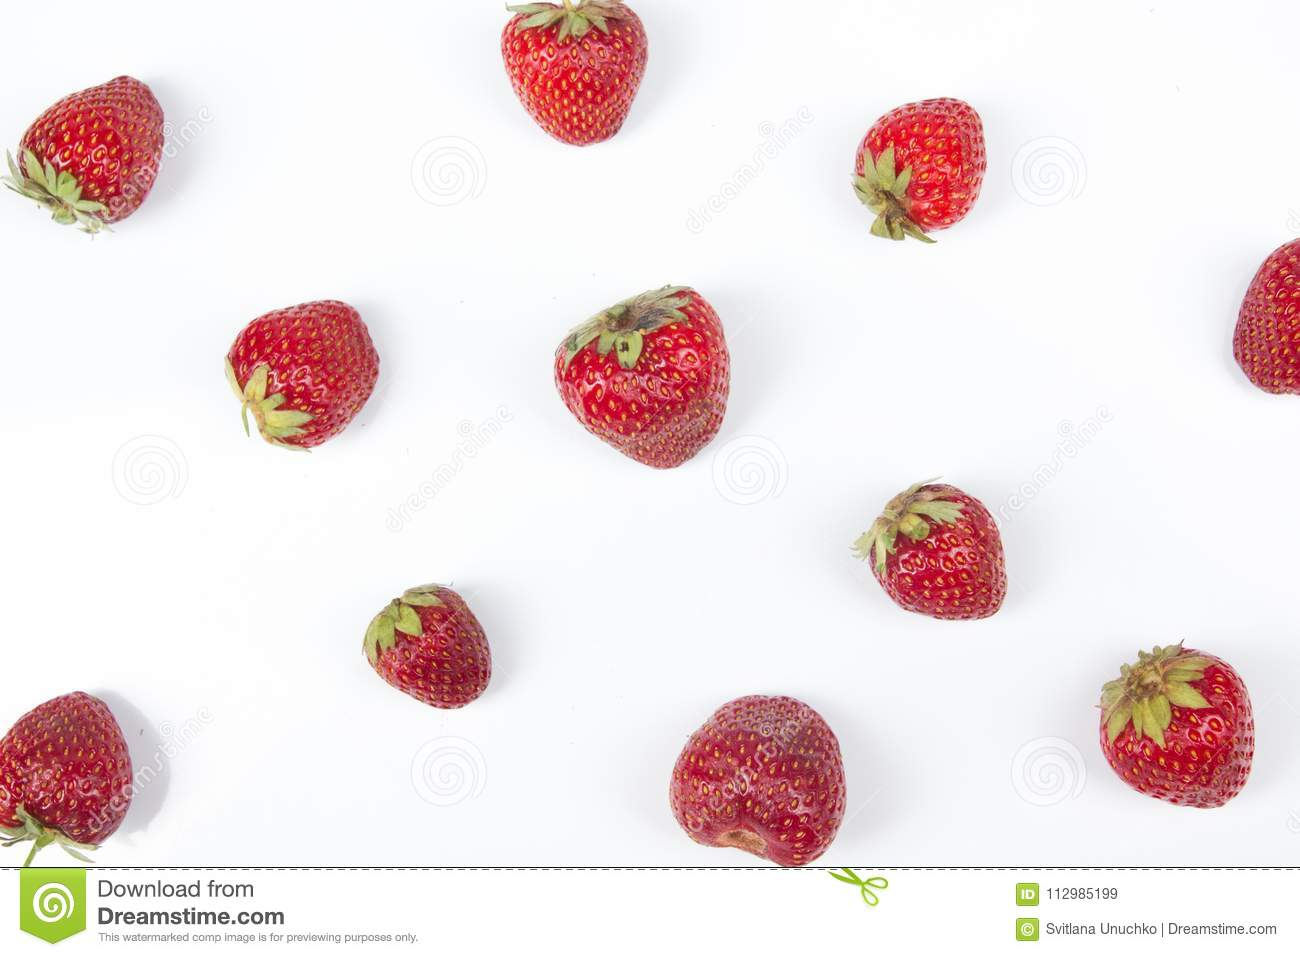 Various summer Fresh Strawberry berries in a white background.. Antioxidants, detox diet, organic fruits. Top view